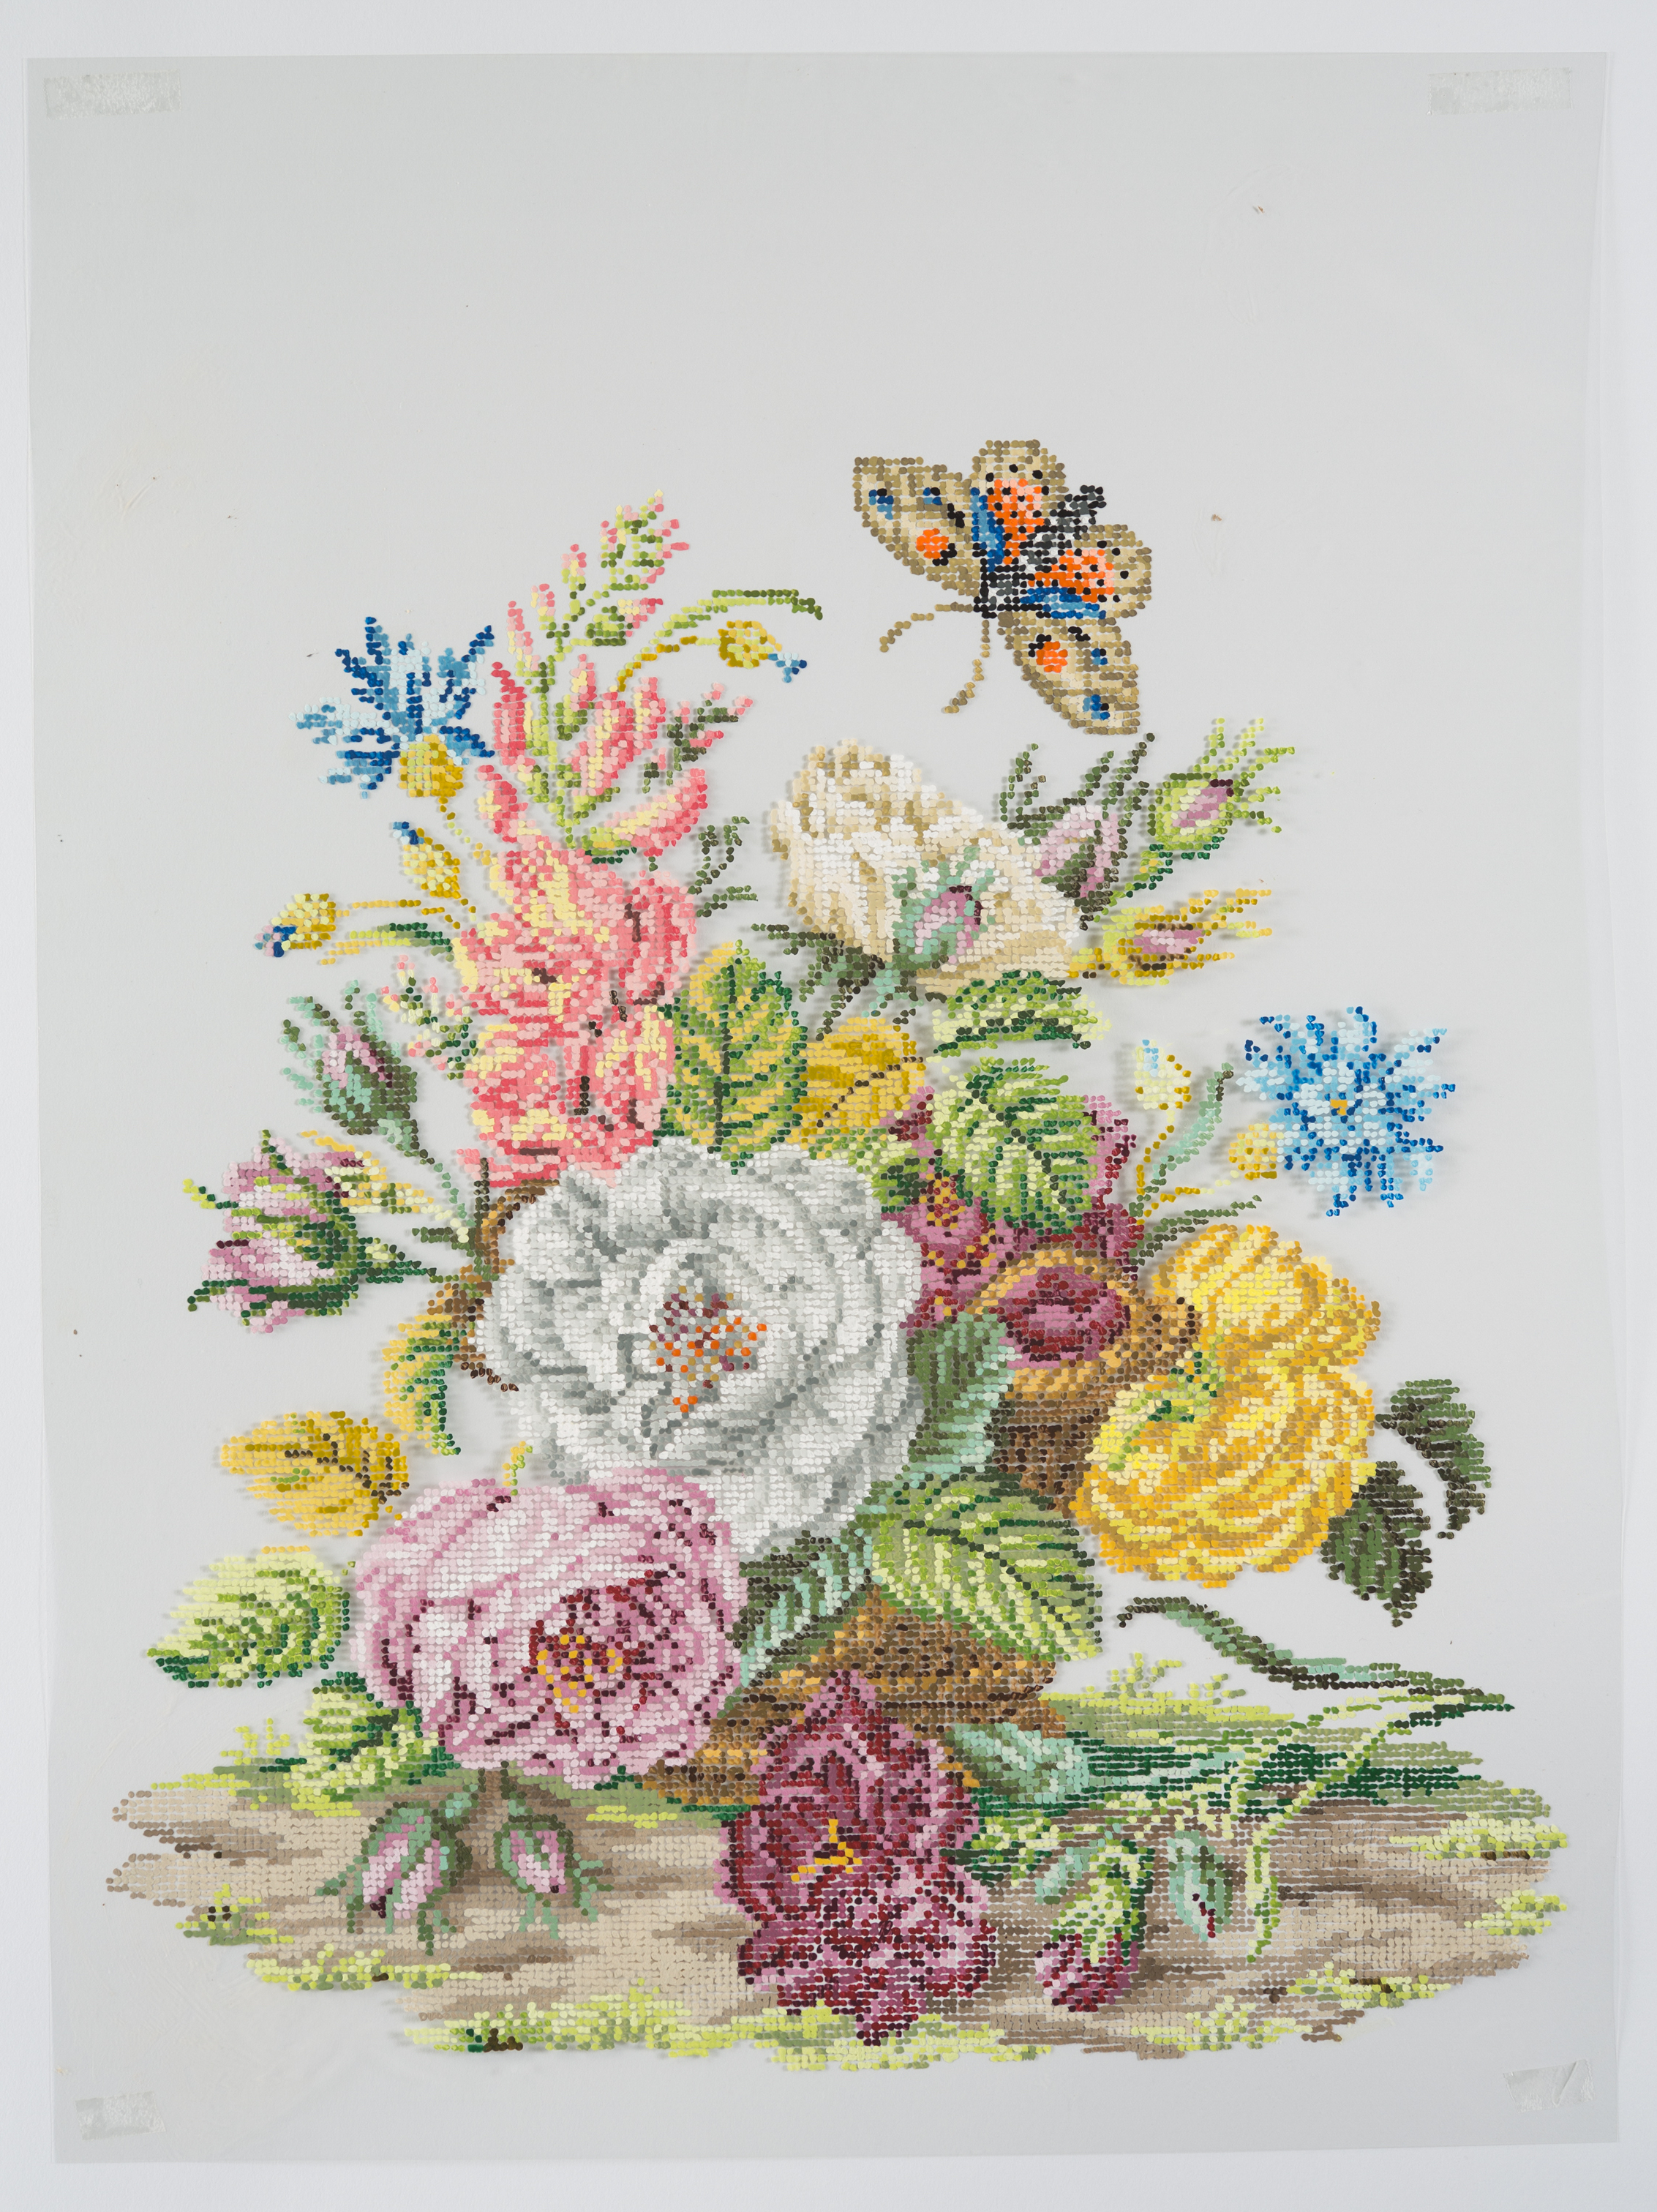 After Floral Embroidery  2016, Gouache on Duralar, 15 x 29 in